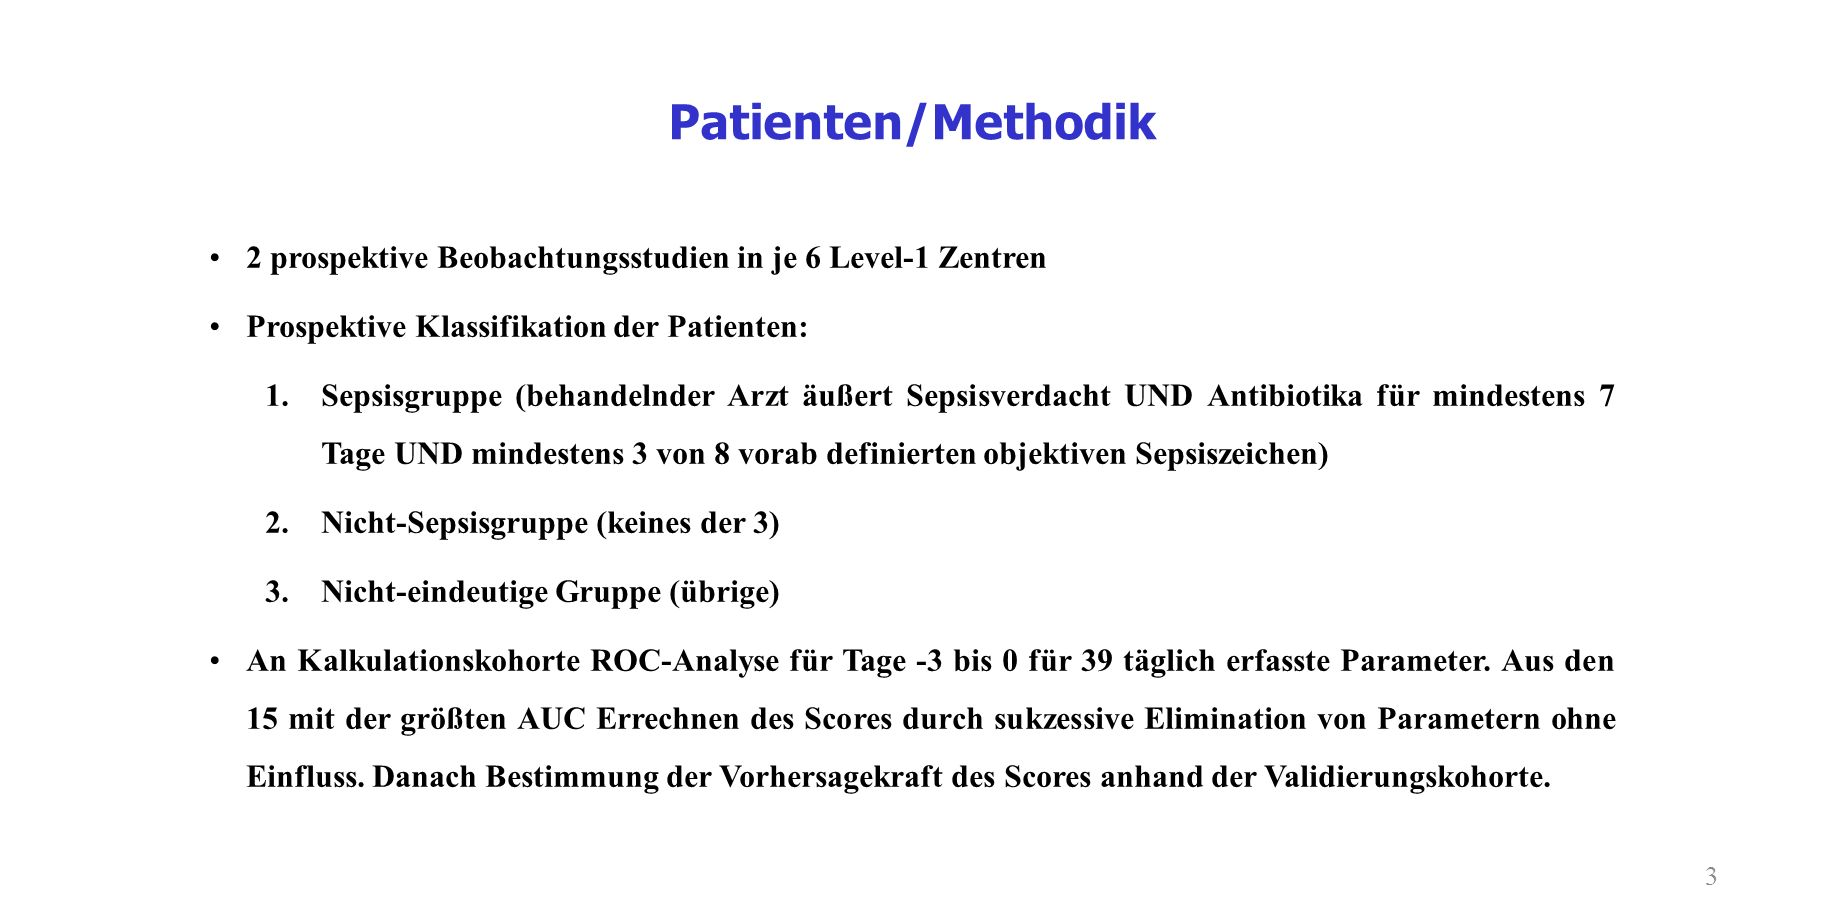 Patienten/Methodik 2 prospektive Beobachtungsstudien in je 6 Level-1 Zentren. Prospektive Klassifikation der Patienten: